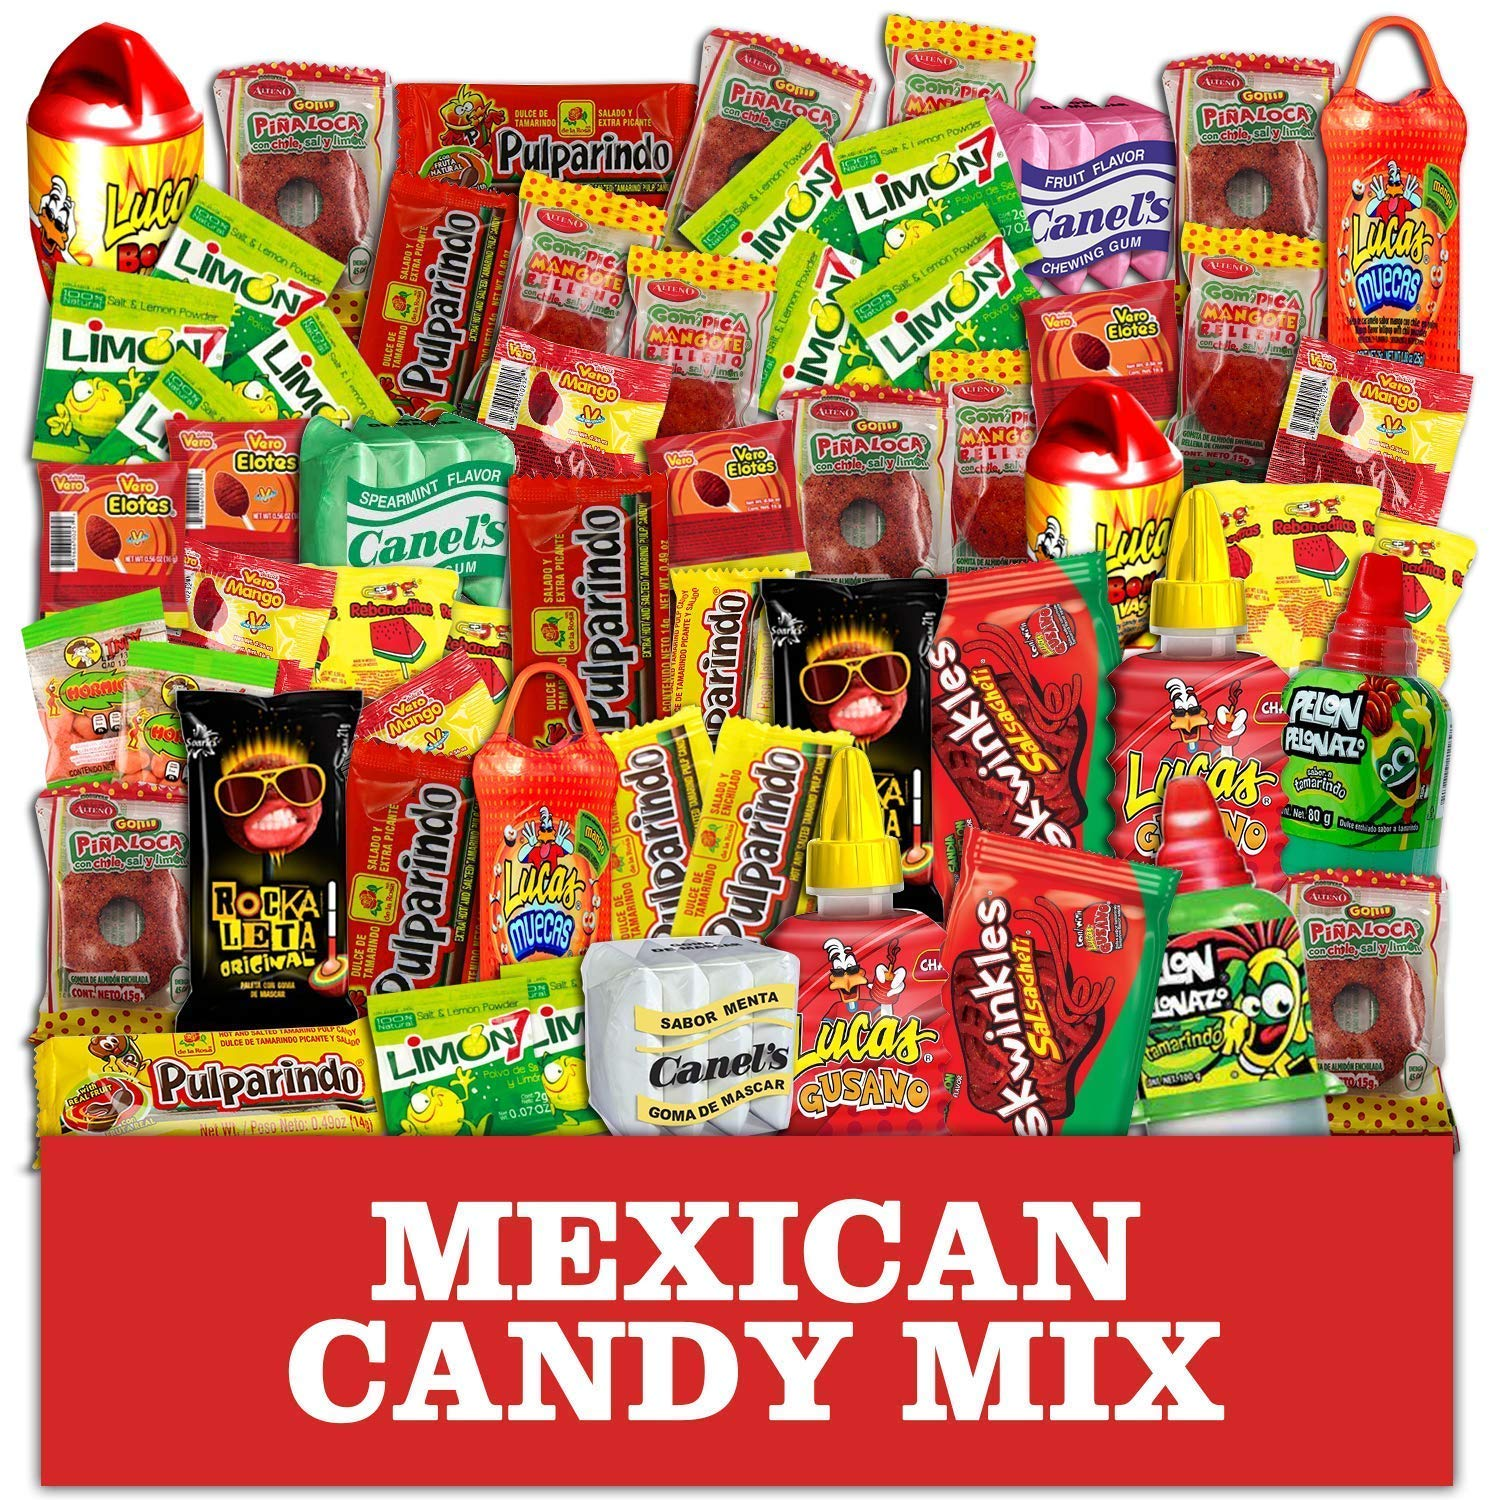 Mexican Candy Assortment Snacks (64 Count), Variety Of Spicy, Sweet, Sour Bulk Candies Dulces Mexicanos, Includes Lucas Candy, Pelon, Vero Lollipop, Pulparindo Makes A Great Gift By MTC. by MTC